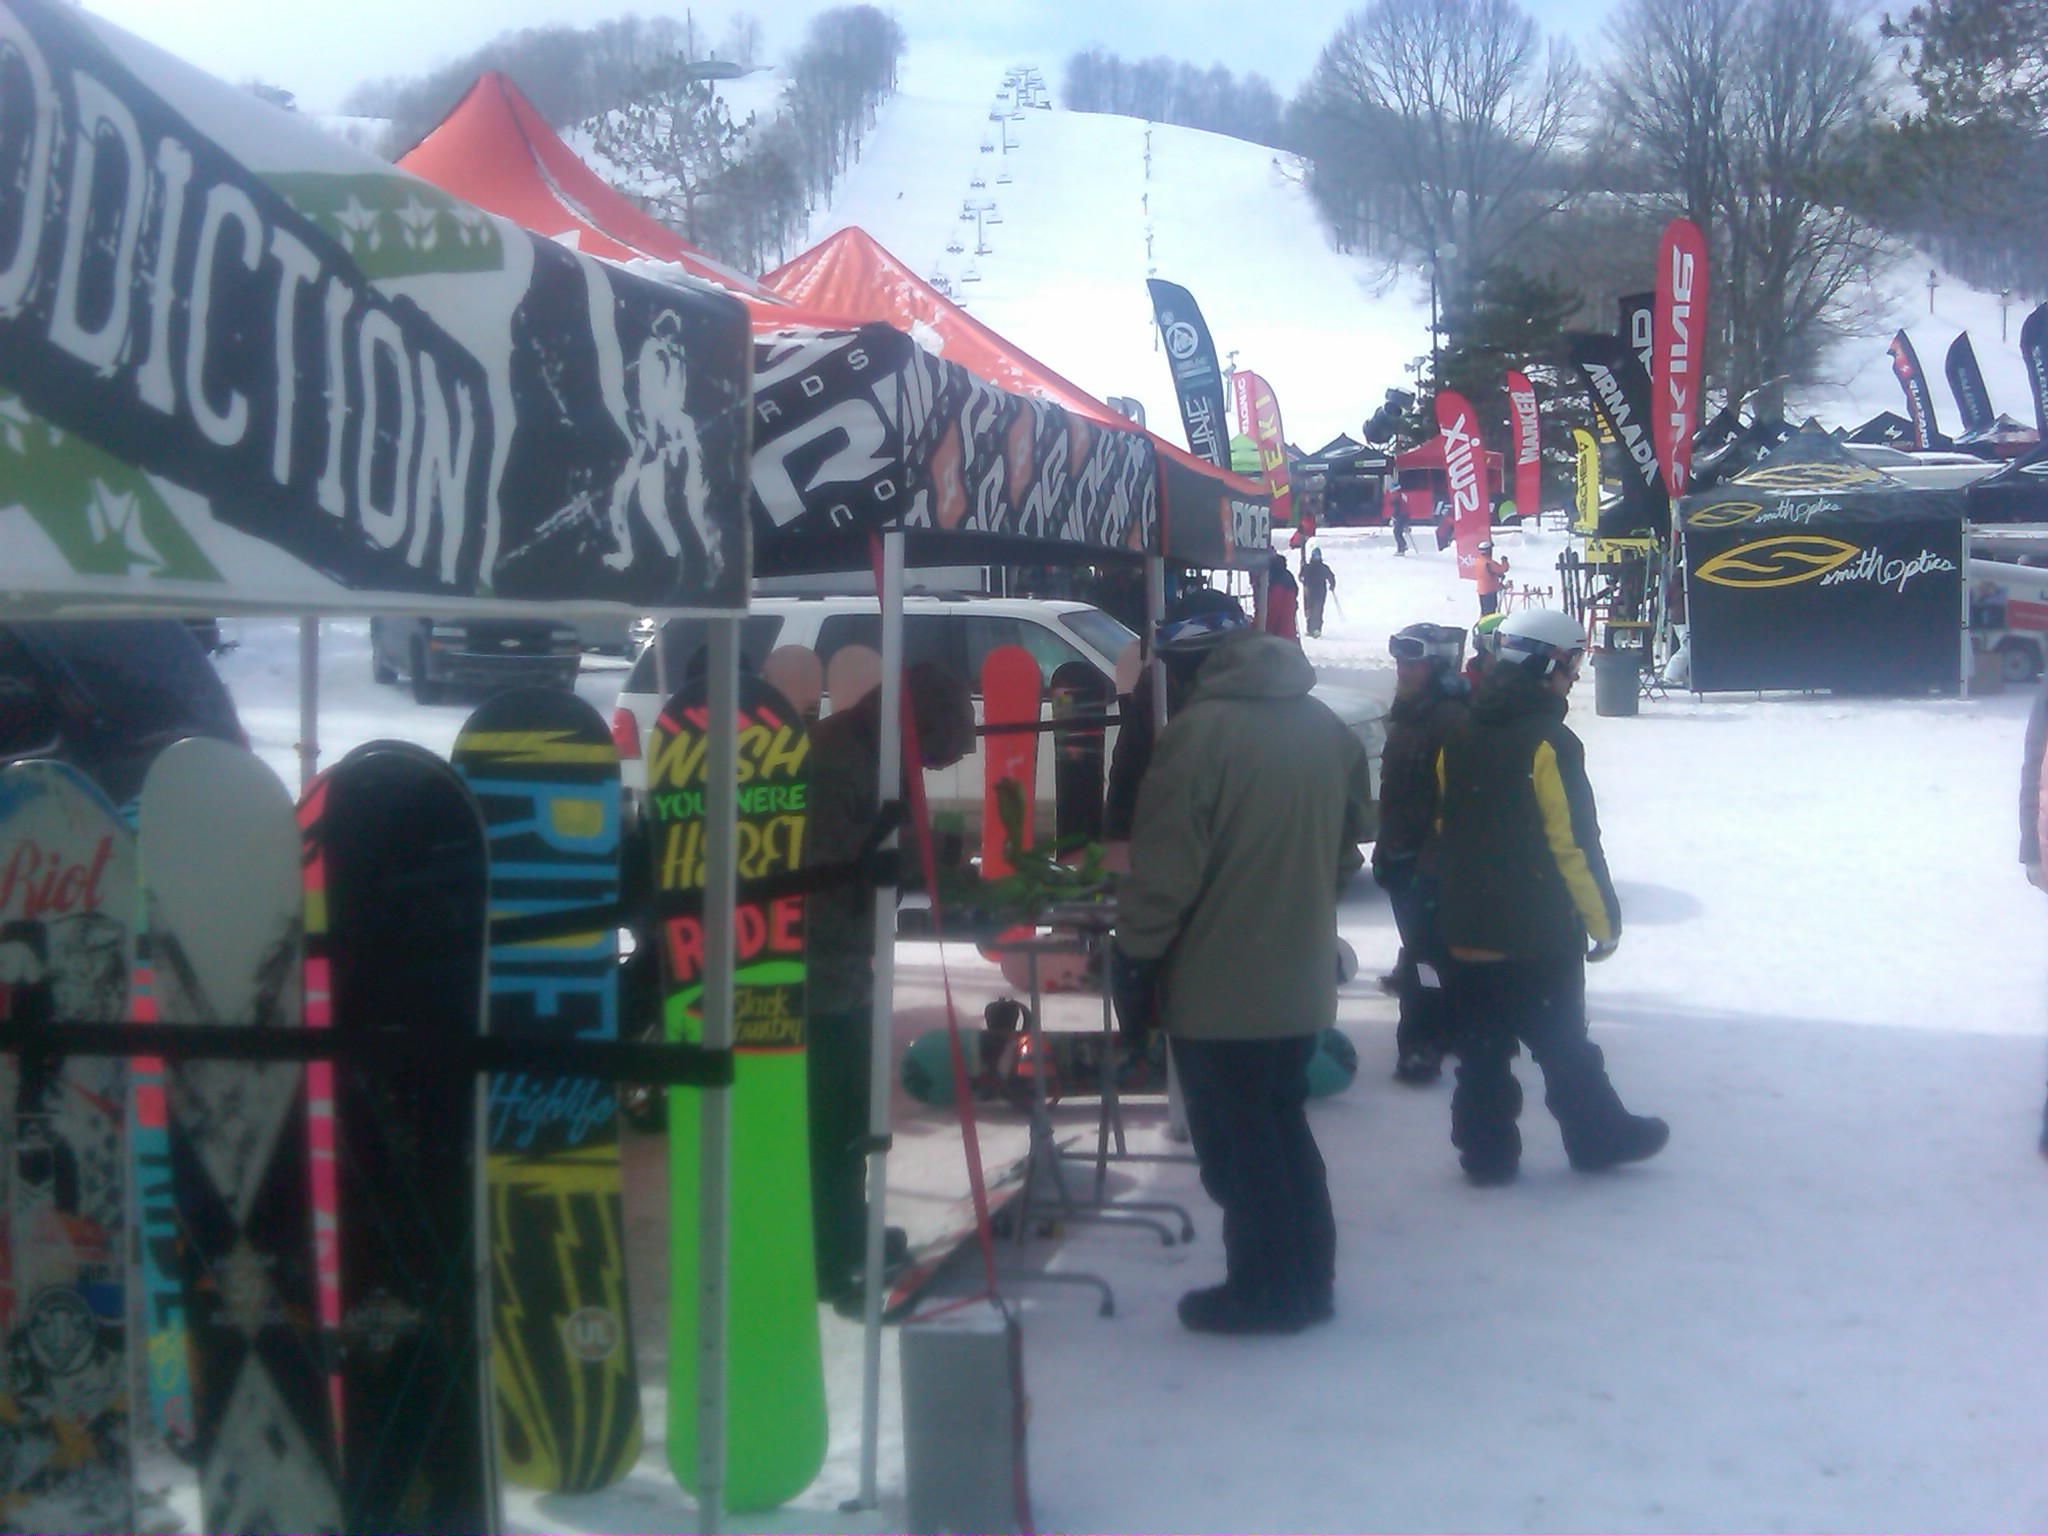 Rome SDS and Ride Snowboards representing